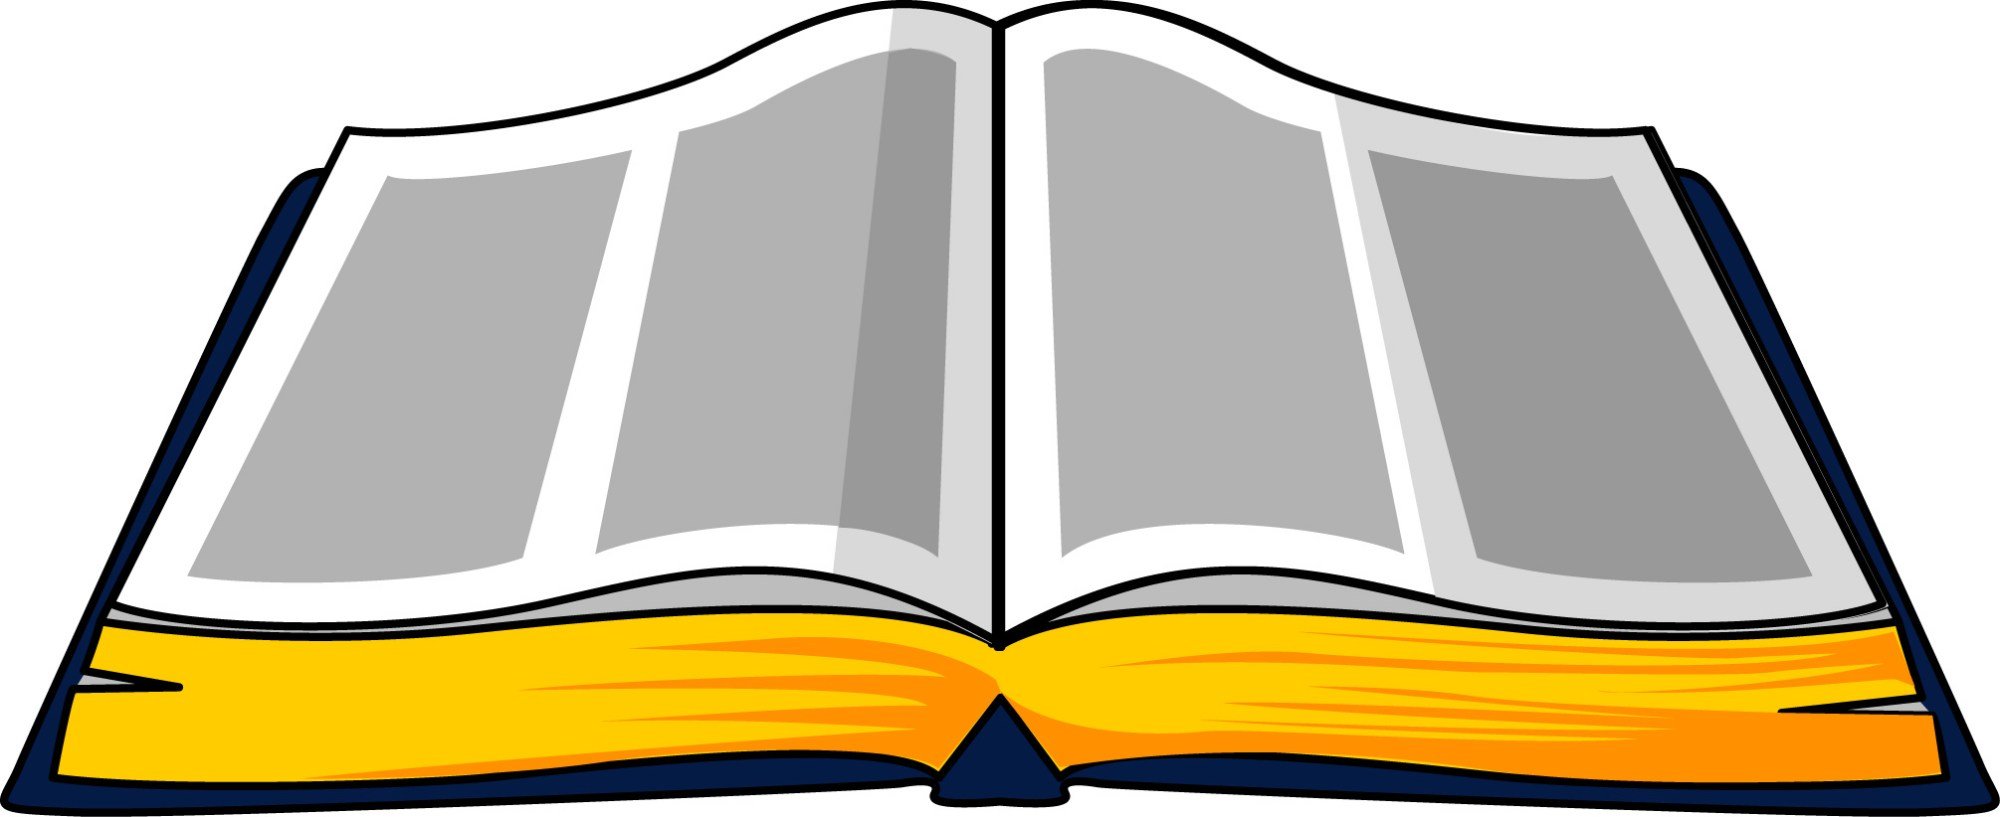 hight resolution of open bible clipart